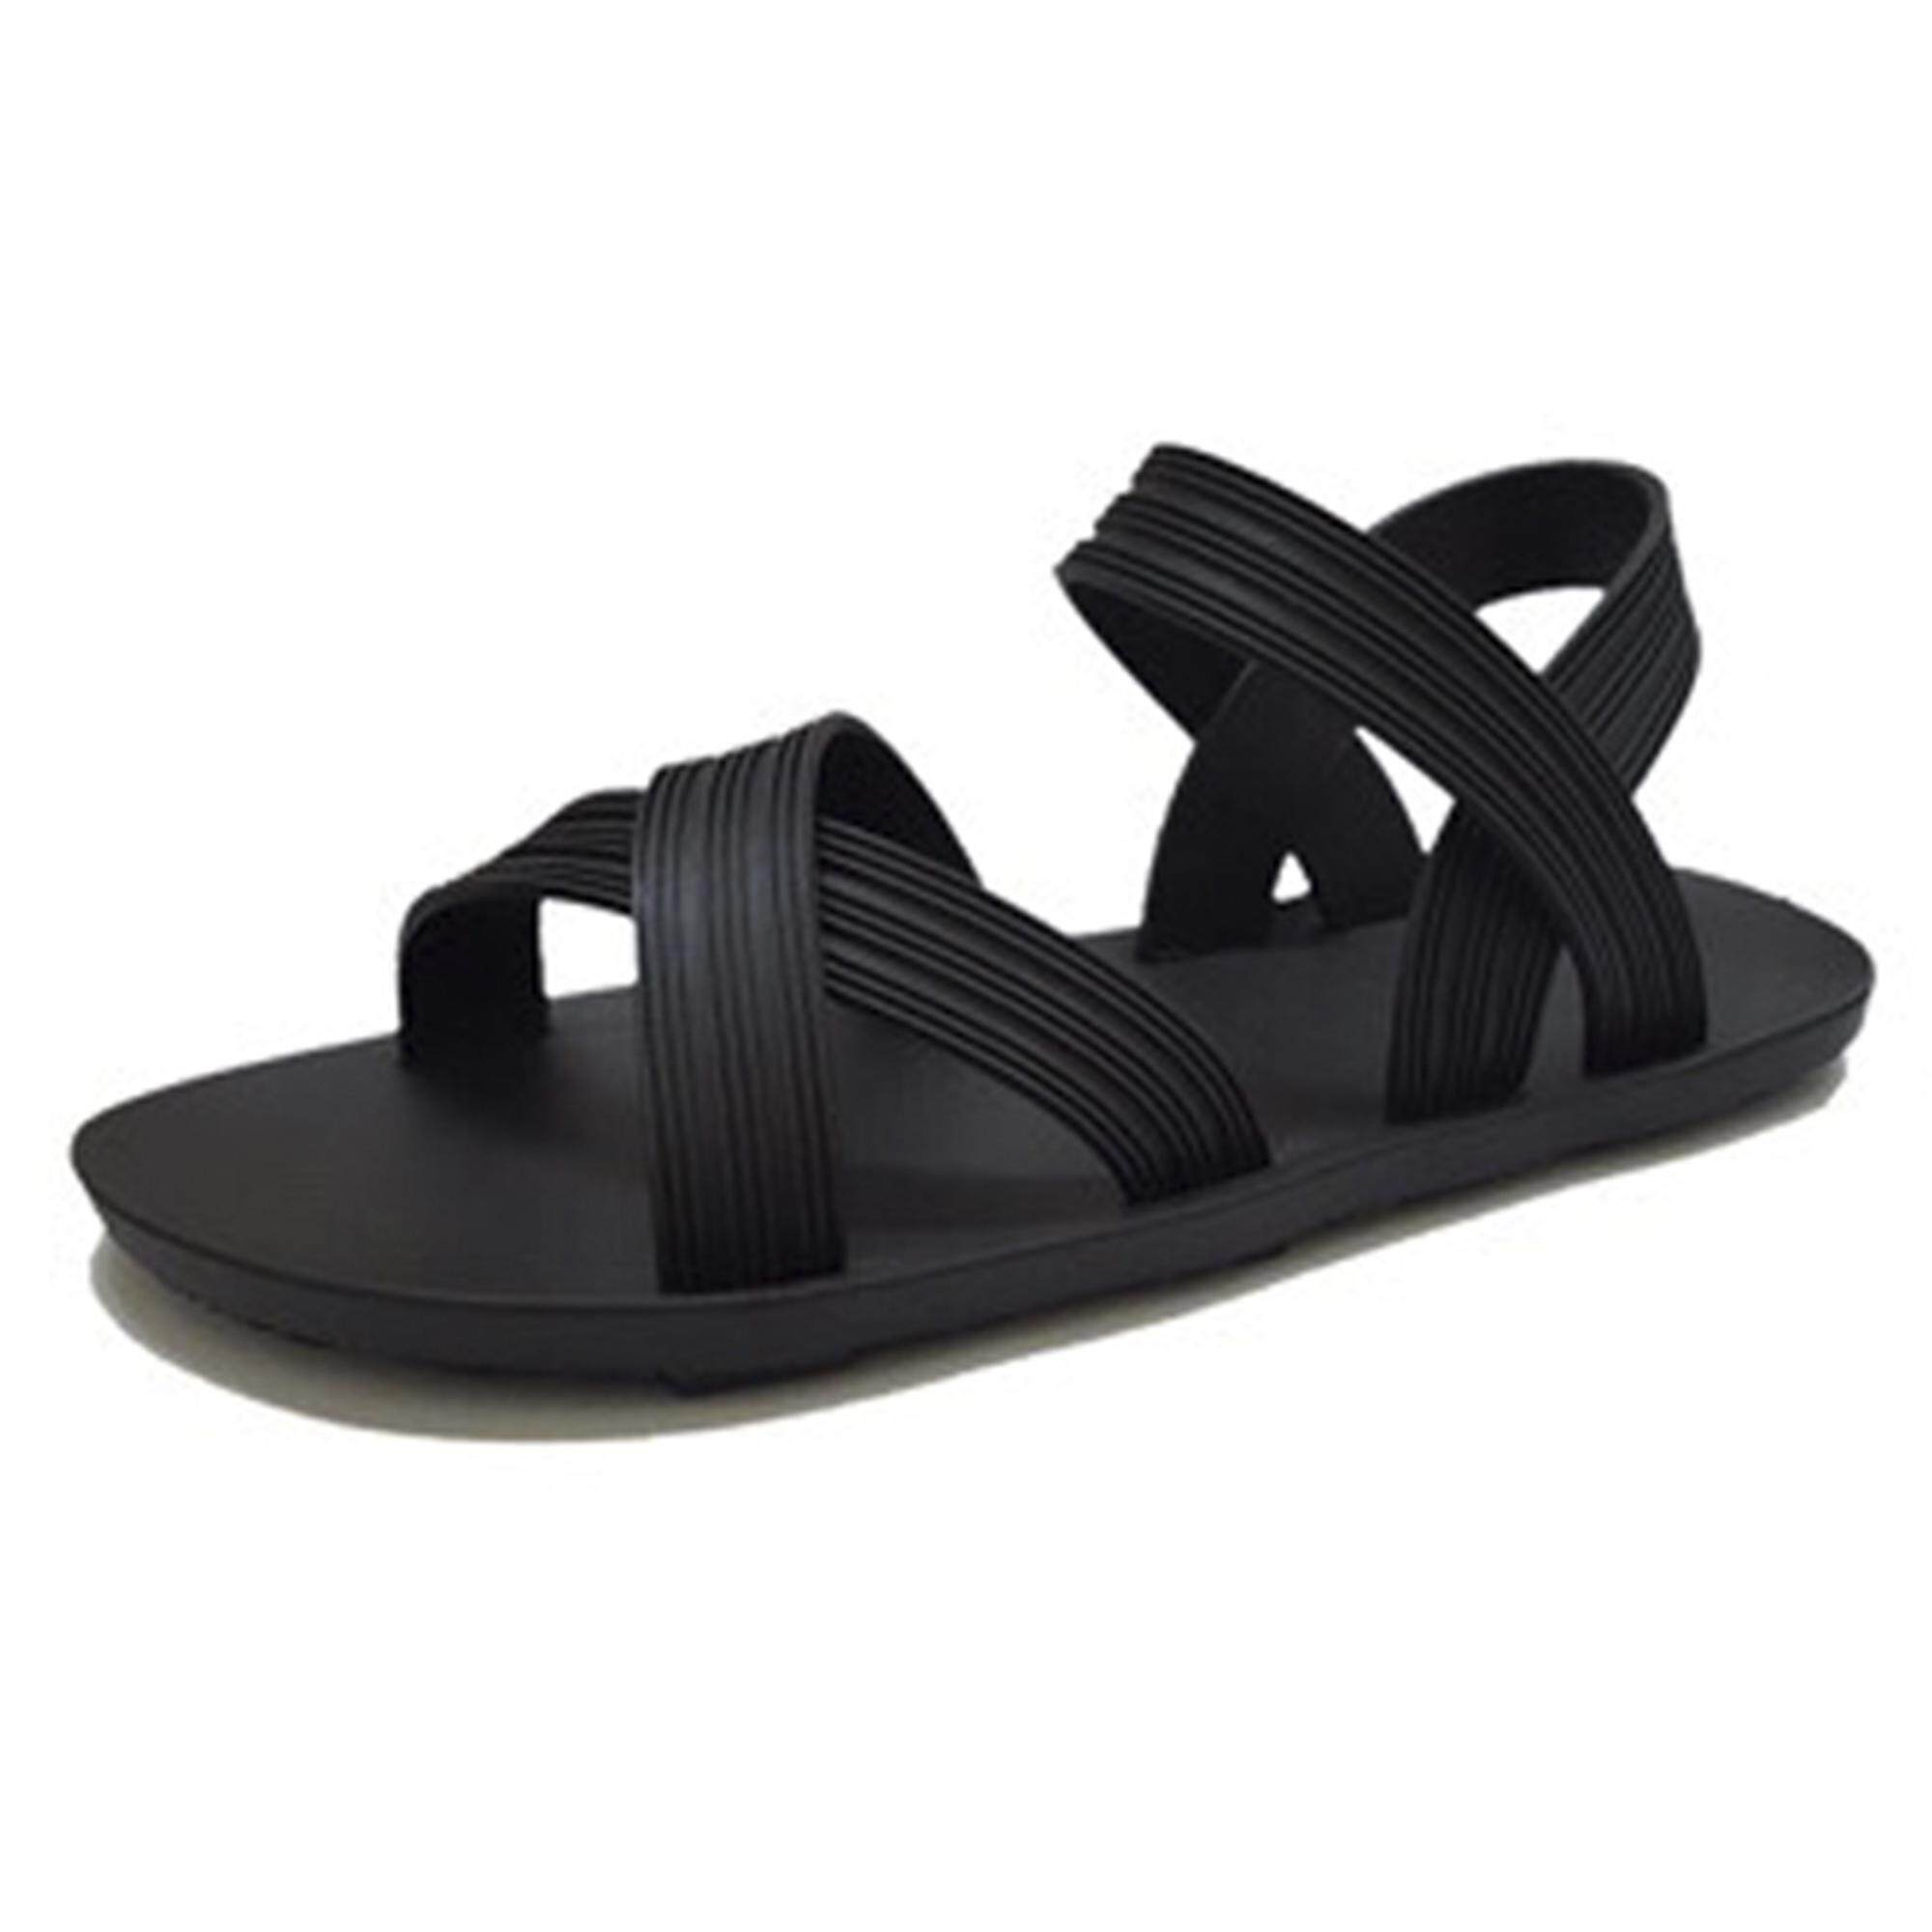 Ladies Shoes For The Best Price In Malaysia Tendencies Footbed Sandals Black Hitam 43